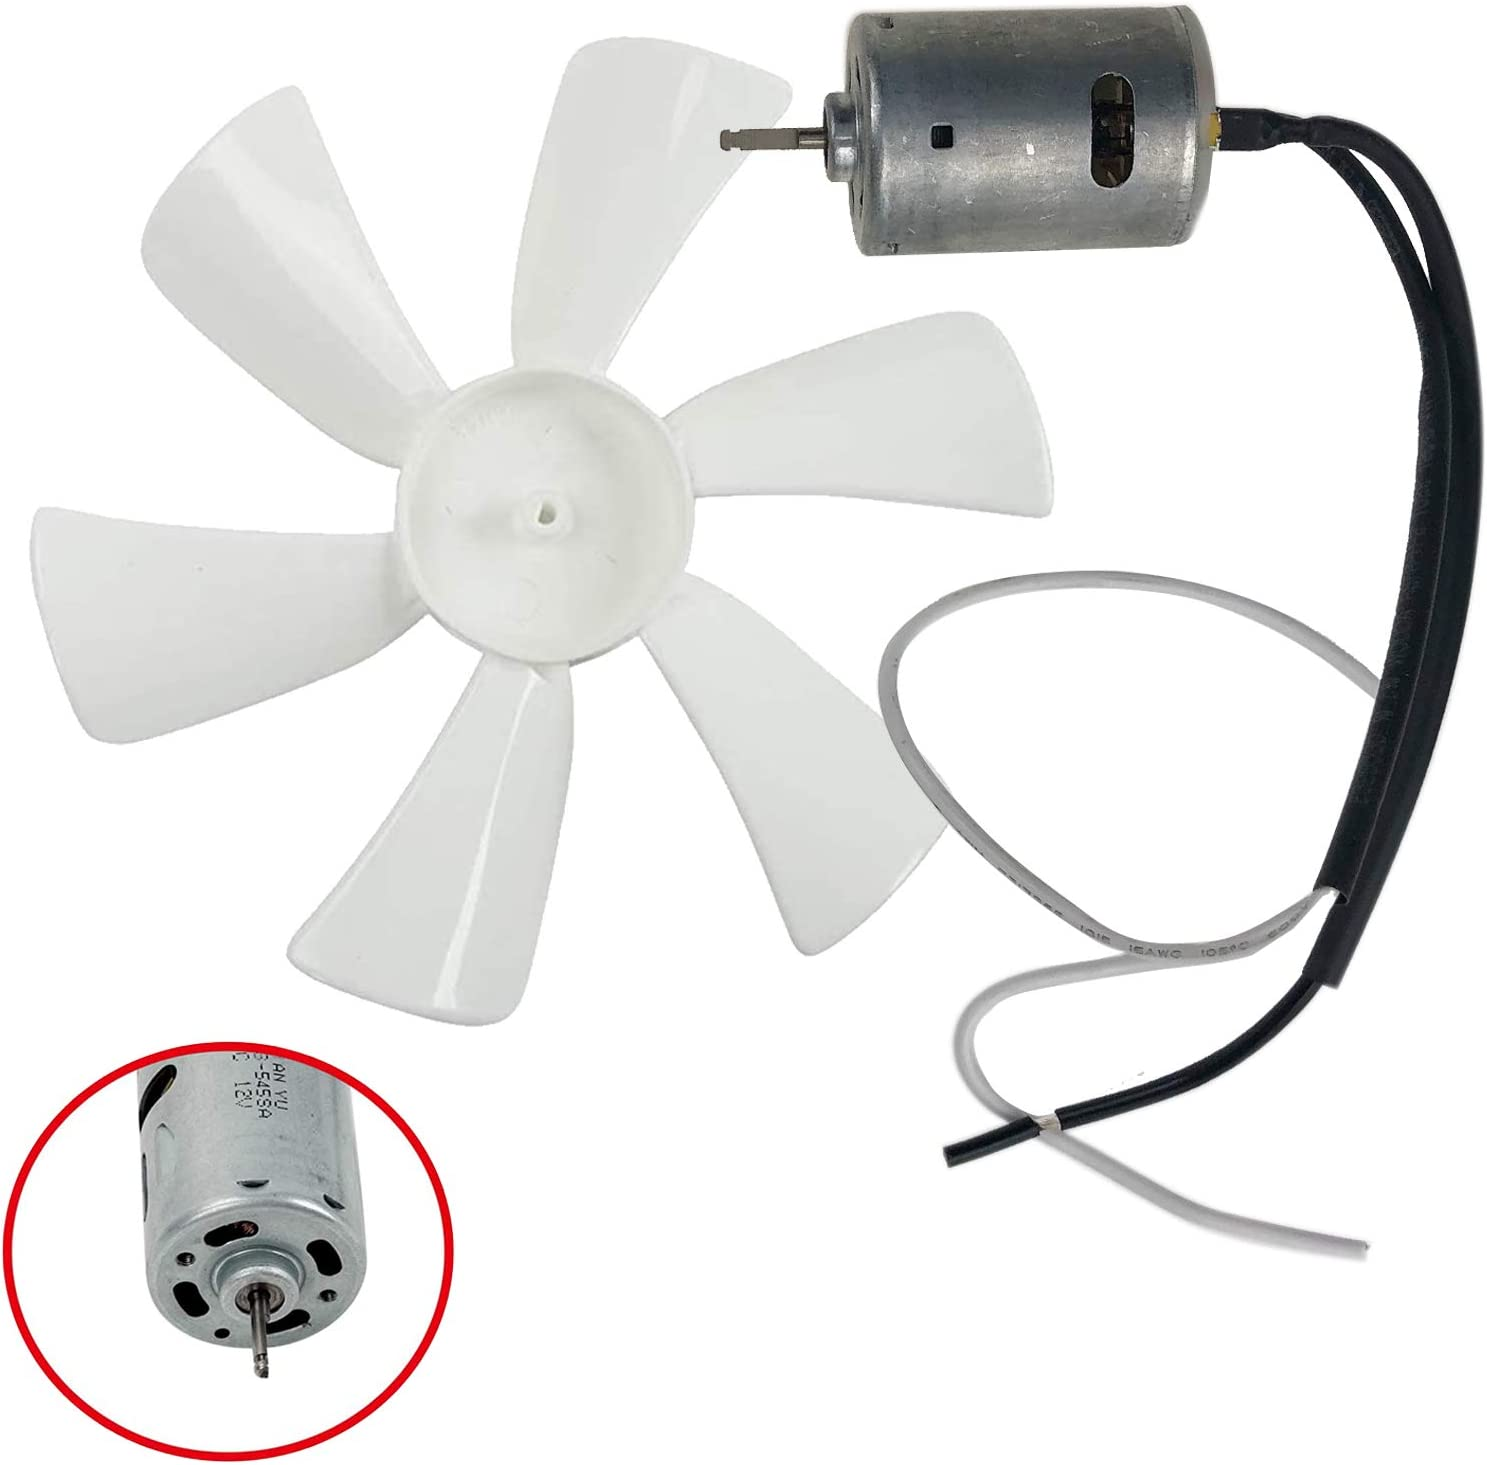 LucaSng 6 inch RV Fan White Vent Fan Blade with 12V D-Shaft RV Vent Motor Replacement Camper Fan Blade Bathroom Fan Home Bathroom Mobile Home RV Motor